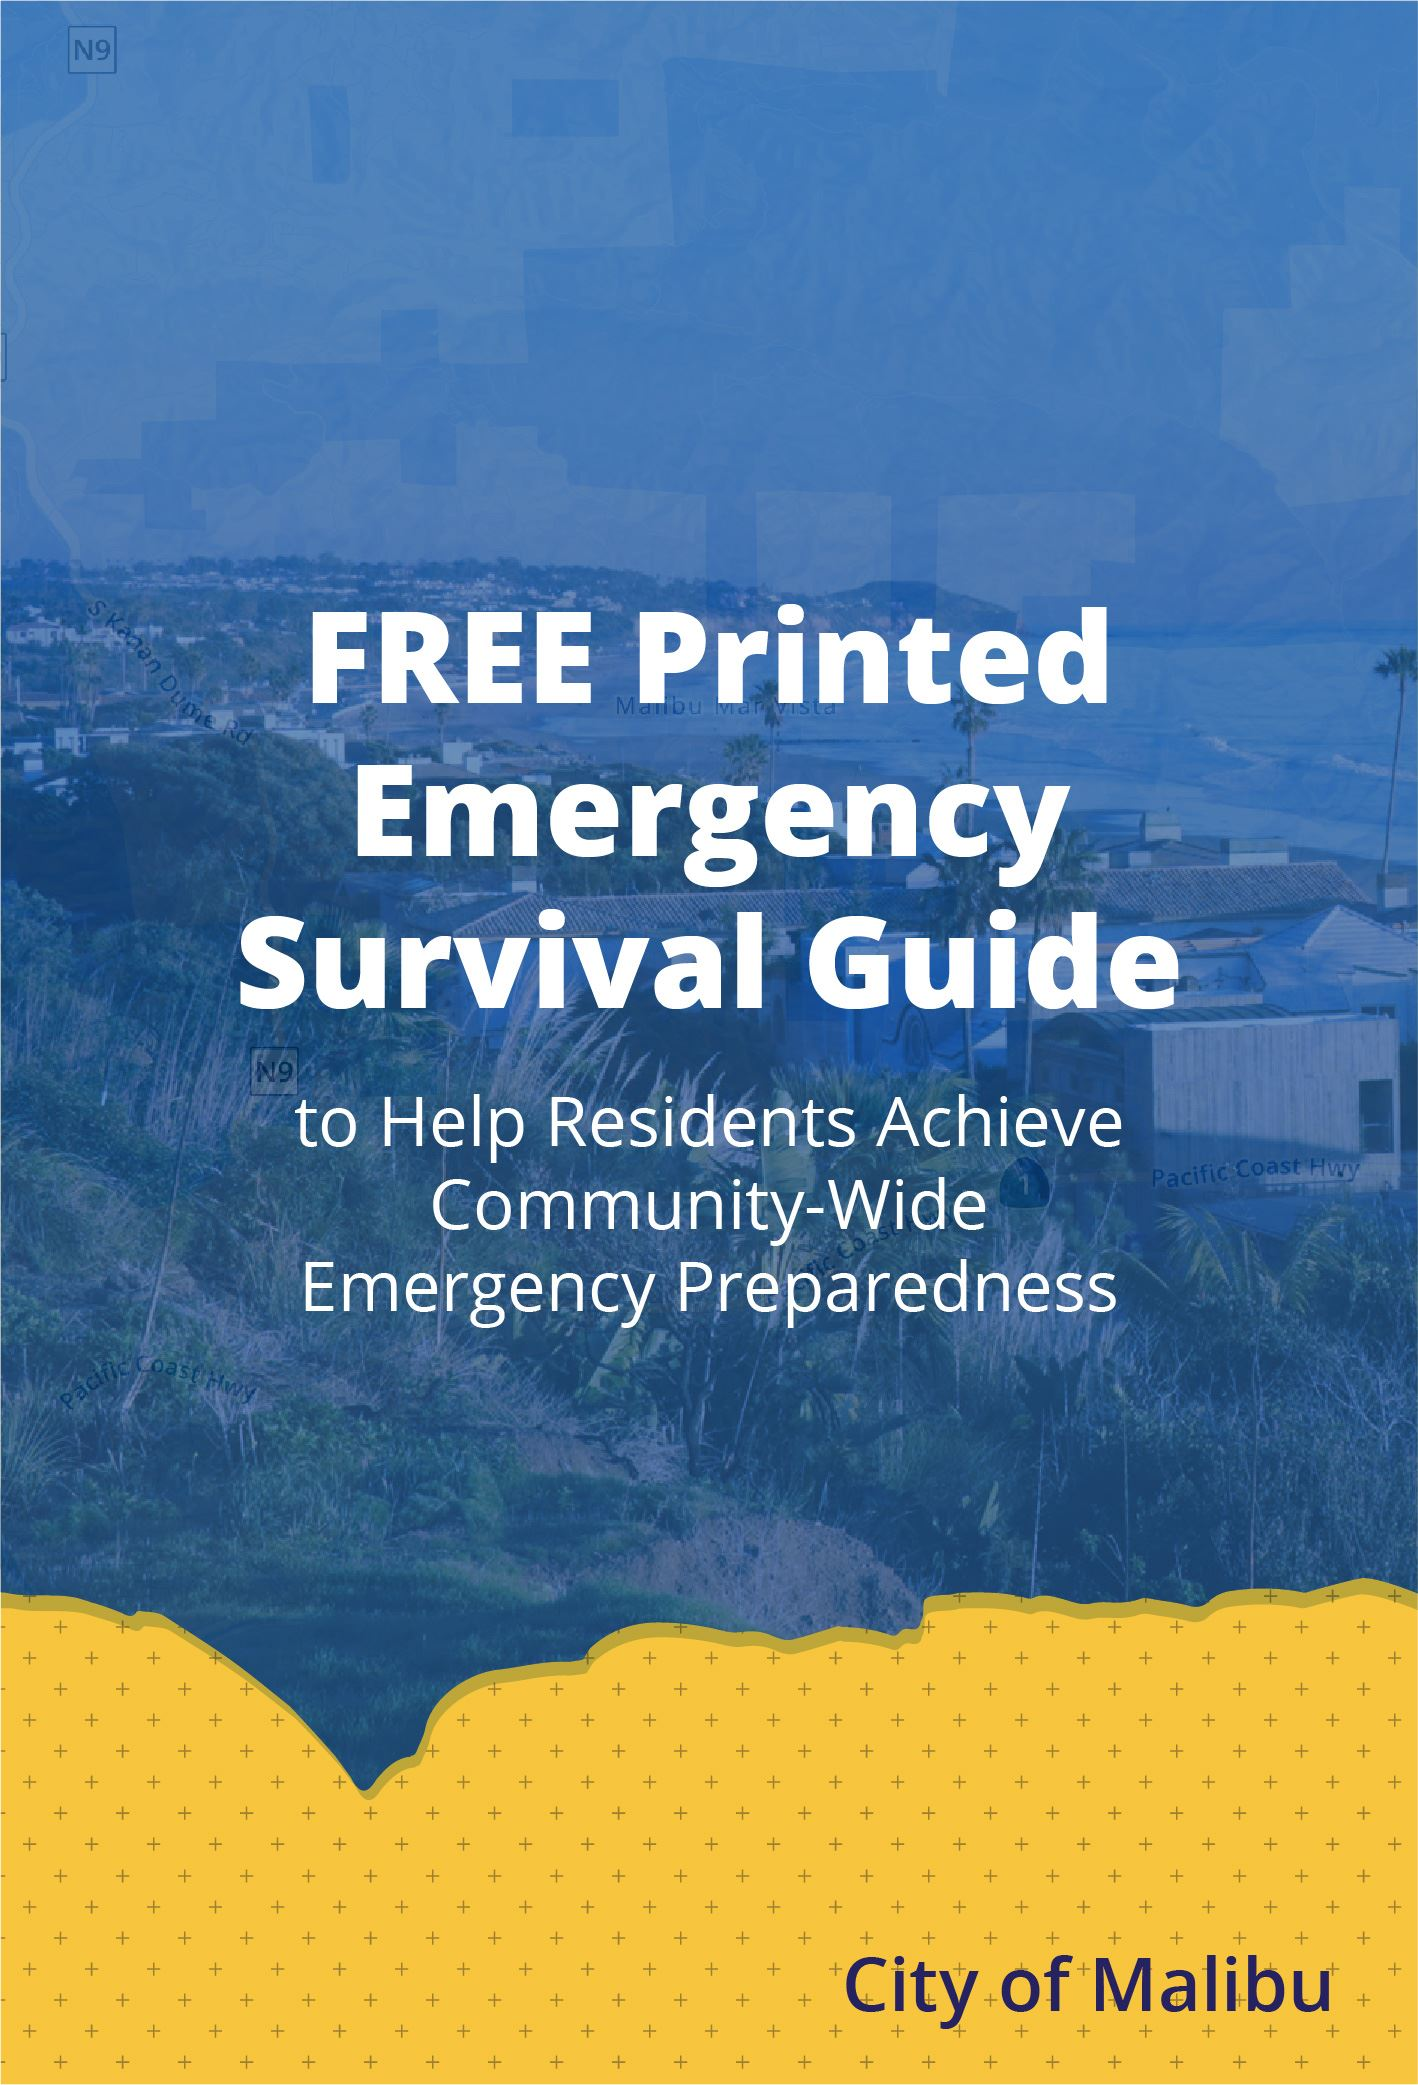 Emergency survival guide_Emergency survival guide